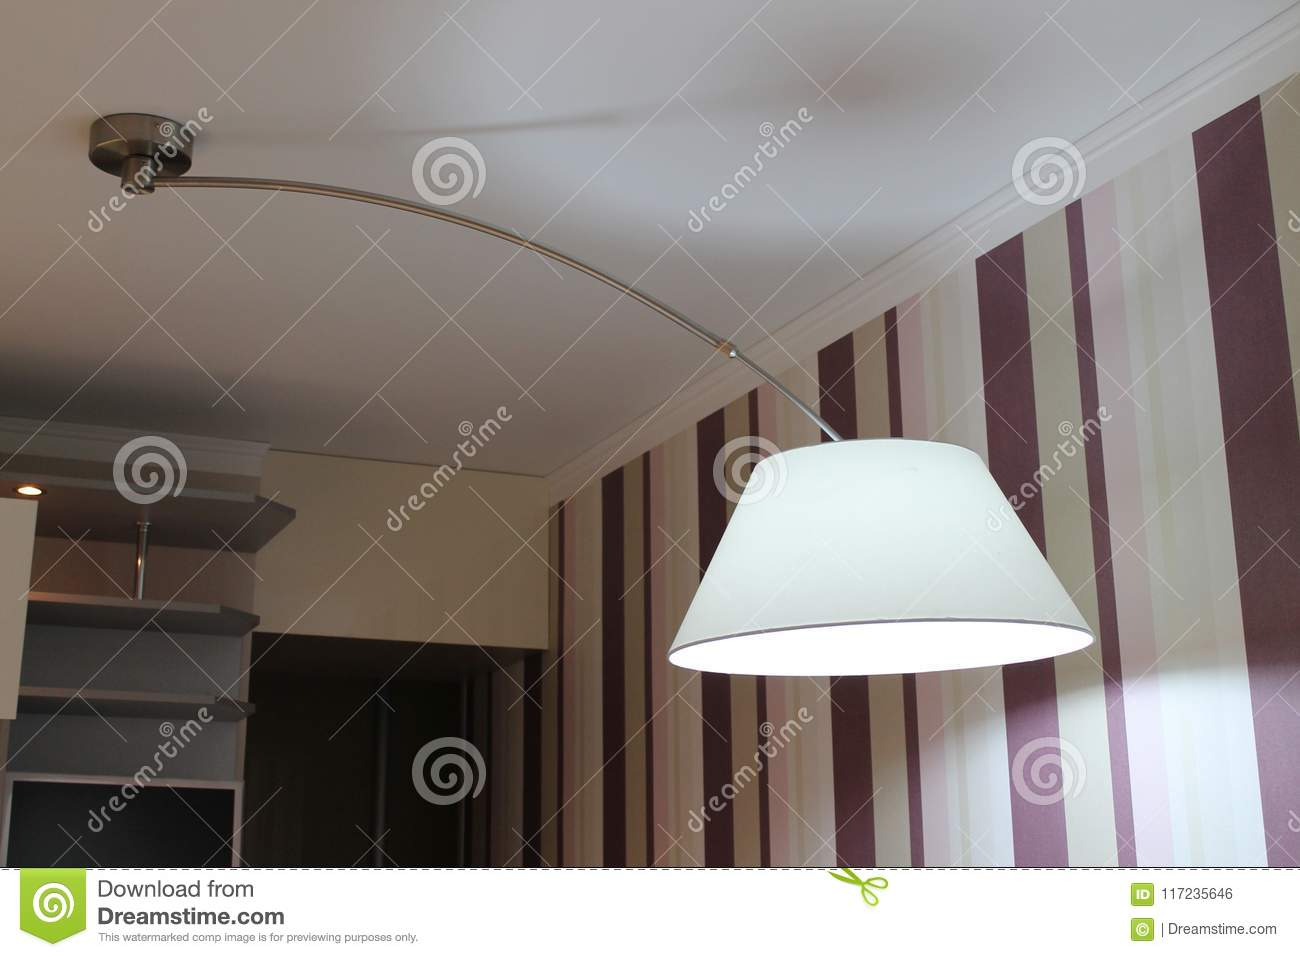 https www dreamstime com modern large lamp hanging over dining table kitchen large beautiful lamp hangs stretch ceiling image117235646